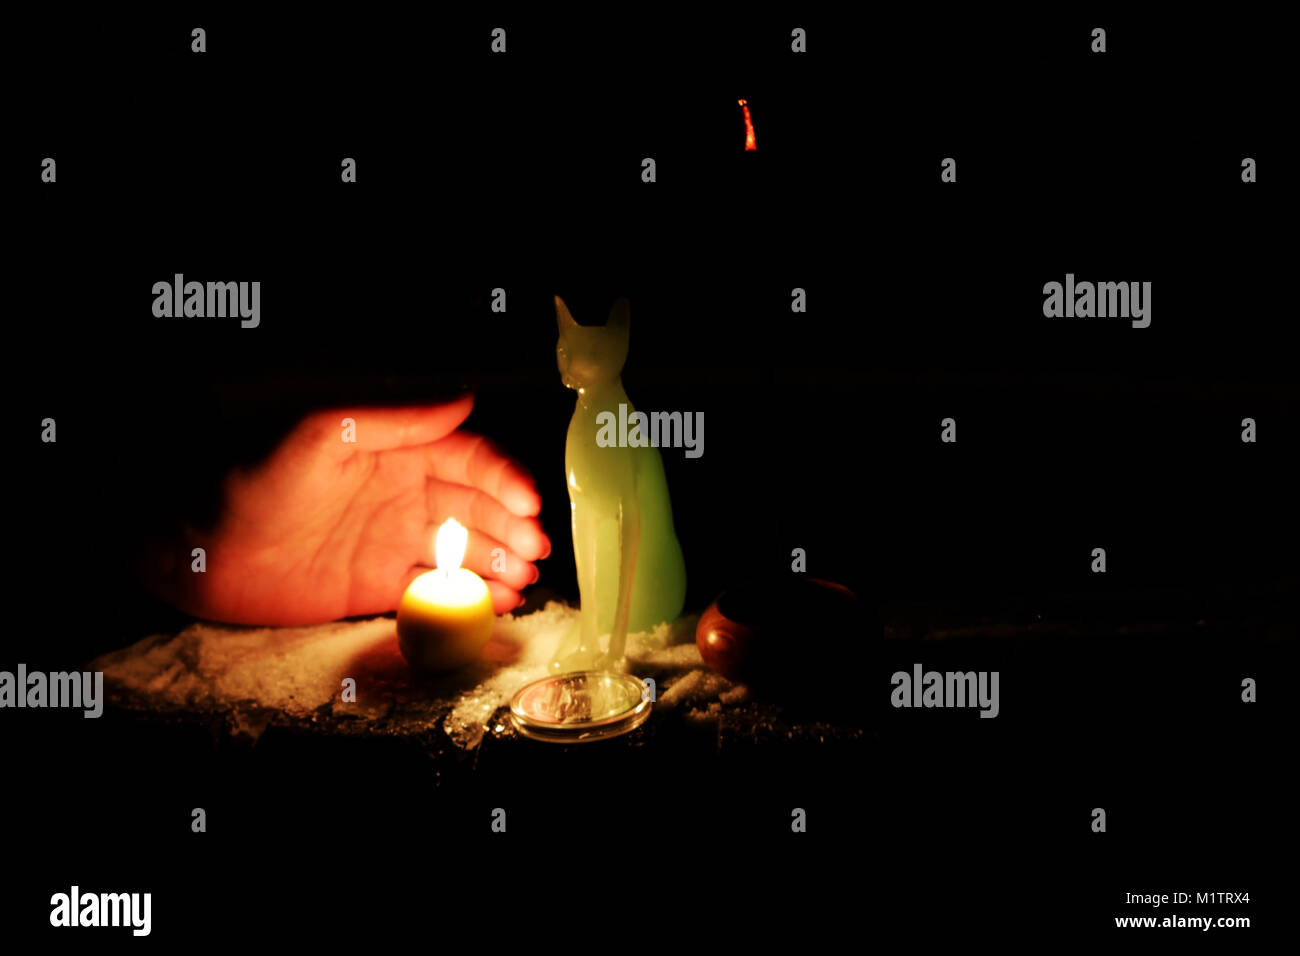 a ritual for the fulfillment of desires with a full moon on the street, with a statue and a candle. January 31, - Stock Image